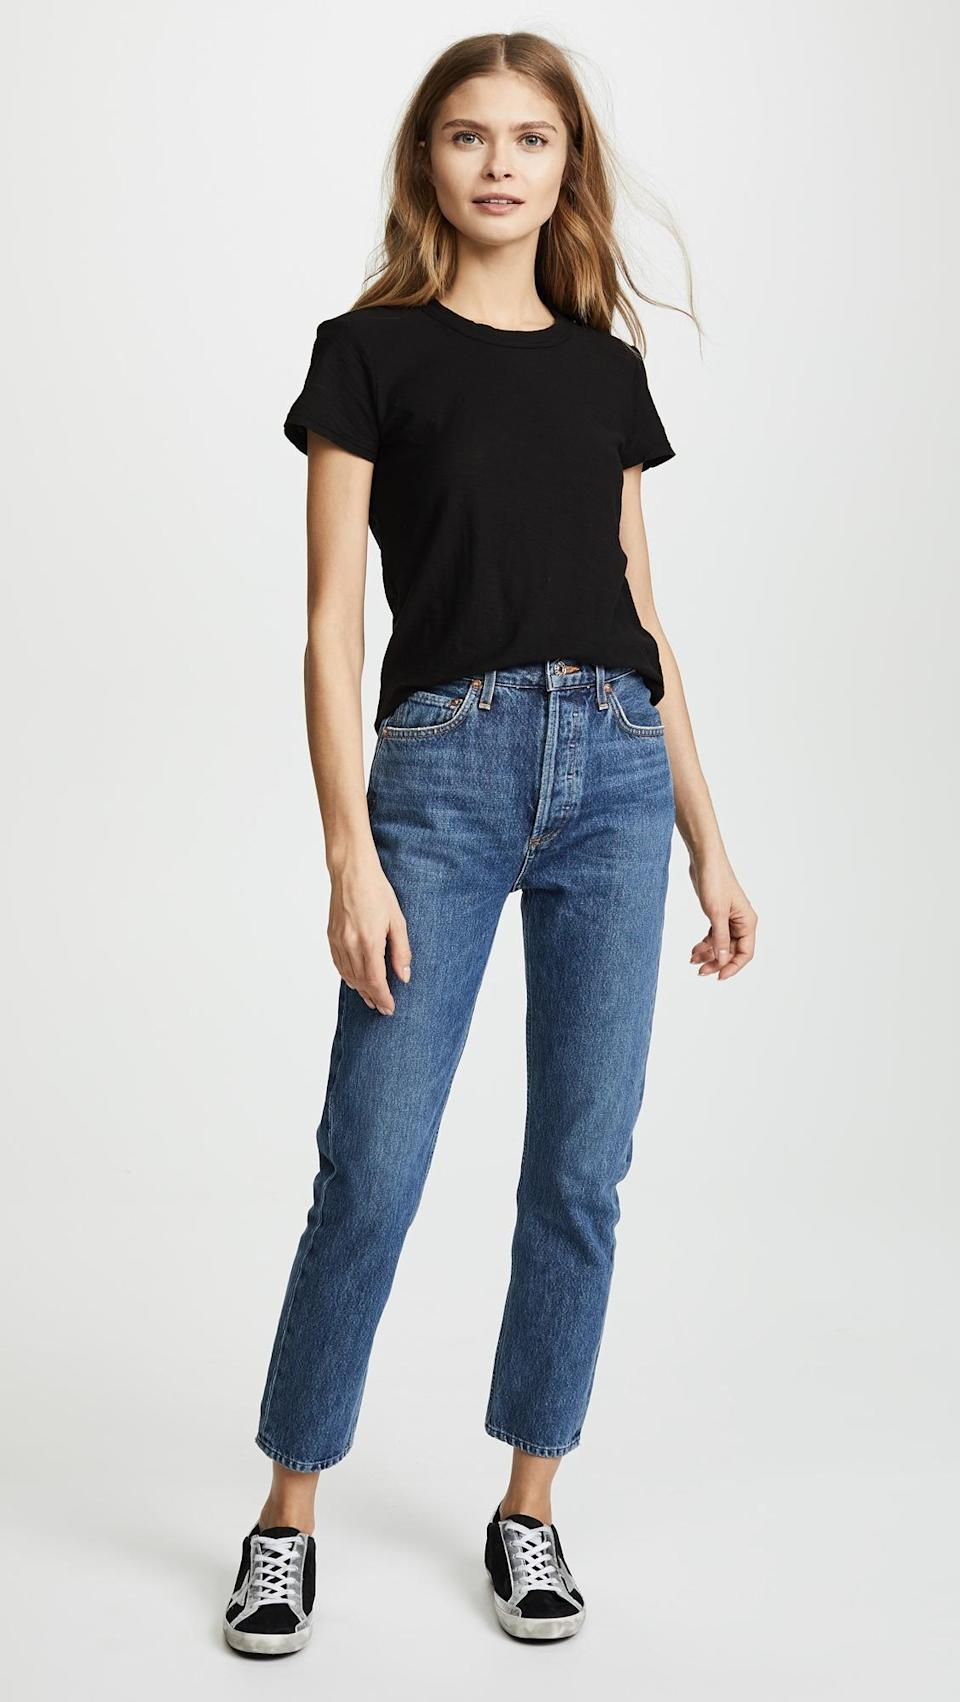 """<strong>The Semi-Sheer Tee</strong><br><br>Ideal for your off-duty life, this loose, semi-sheer T-shirt features a relaxed hem that's a hit amongst reviewers.<br><br><strong>The Hype:</strong> 4 out of 5 stars on Shopbop<br><br><strong>What They're Saying:</strong> """"I have every color (almost) in these tops. They are lightweight and go with everything. Perfect for wearing alone or layering. A little pricey but worth it."""" - StacLynn, Shopbop Review<br><br><strong>James Perse</strong> Sheer Slub Crew Neck Tee, $, available at <a href=""""https://go.skimresources.com/?id=30283X879131&url=https%3A%2F%2Fwww.shopbop.com%2Fsheer-slub-crew-neck-tee%2Fvp%2Fv%3D1%2F1590711076.htm"""" rel=""""nofollow noopener"""" target=""""_blank"""" data-ylk=""""slk:Shopbop"""" class=""""link rapid-noclick-resp"""">Shopbop</a>"""